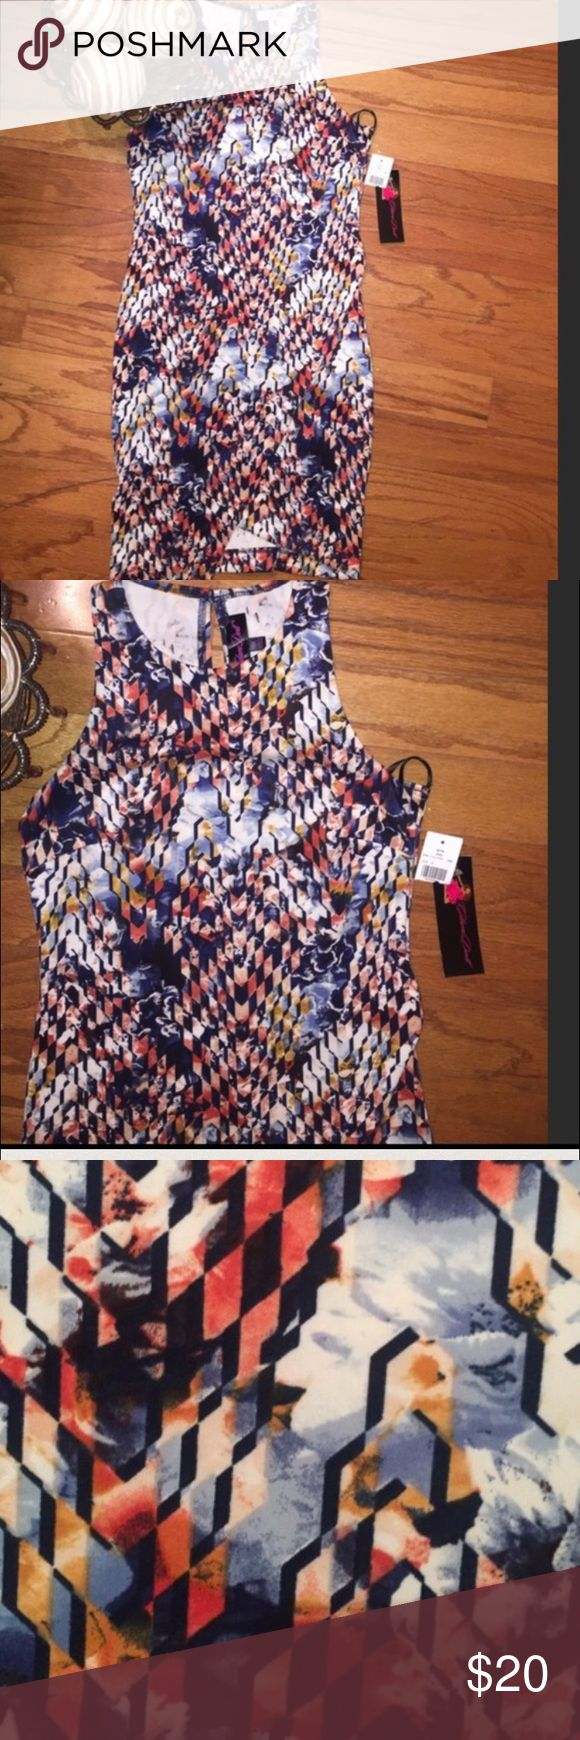 🌺NWT BODYCON DRESS by Glam Doll🌺 This is a printed Bodycon dress. Pulls overhead with one button in back at neck. Asymmetric, flattering with lots of give, however if your larger than a medium it will not fall right. Colors include Ivy, blue, coral according to tag. 95% polyester 5% spandex. 32 1/2 inches at shortest part and 34 1/2 inches at the longest part of the skirt. Pair with Jean blazer and some boots you ready for fall... Dresses